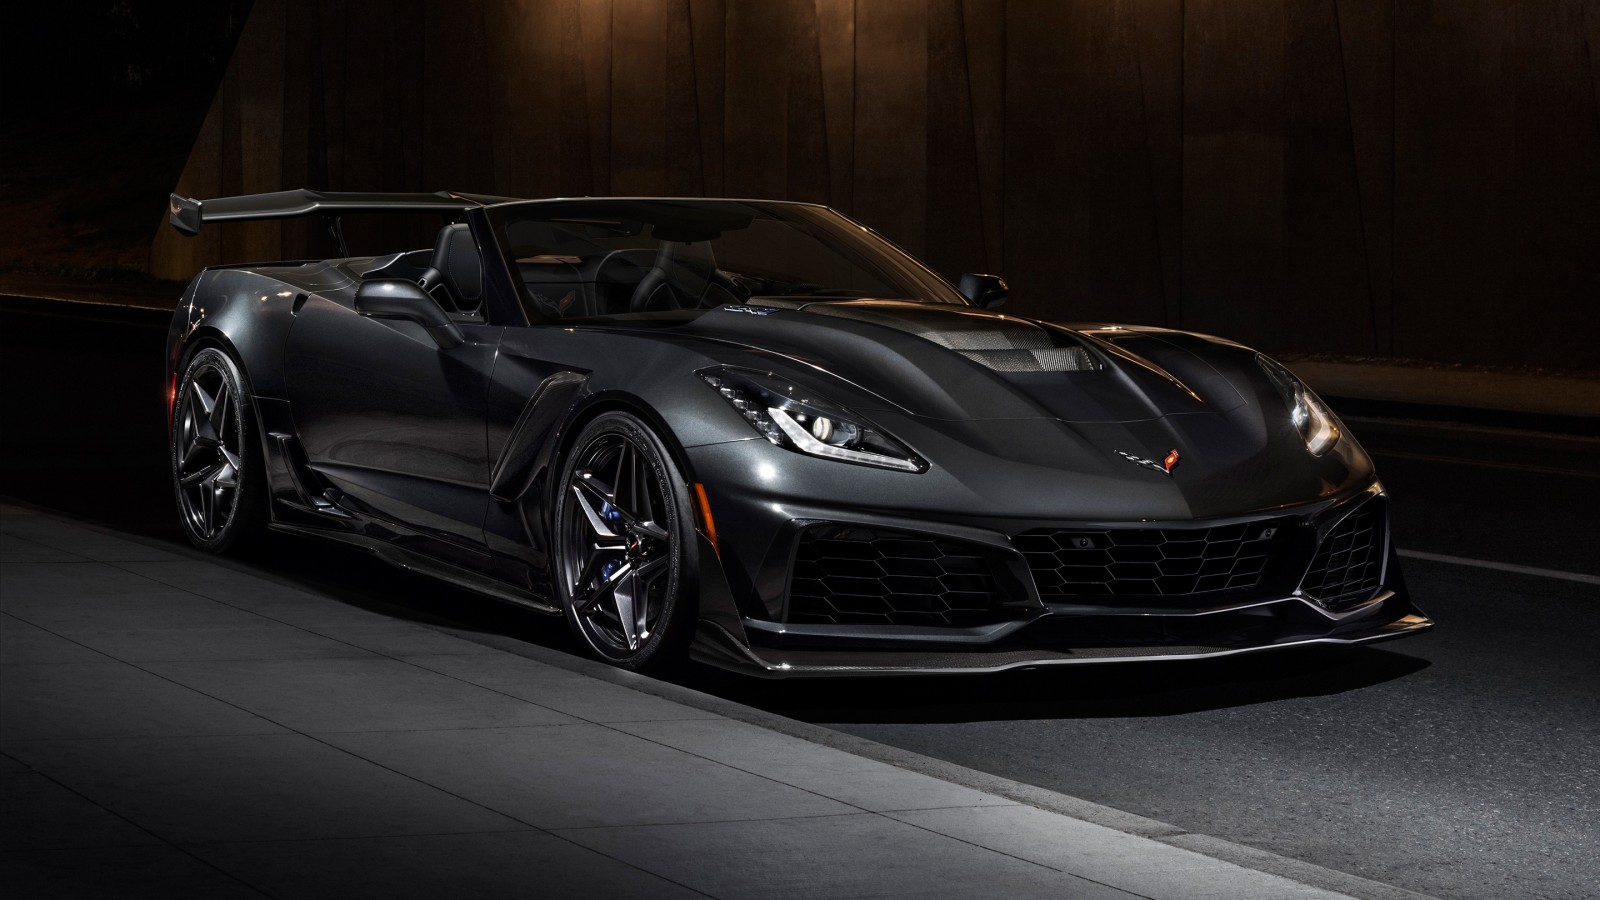 Hd Jaguar Car Wallpaper Download 2019 Chevrolet Corvette Zr1 Convertible Wallpaper Hd Car